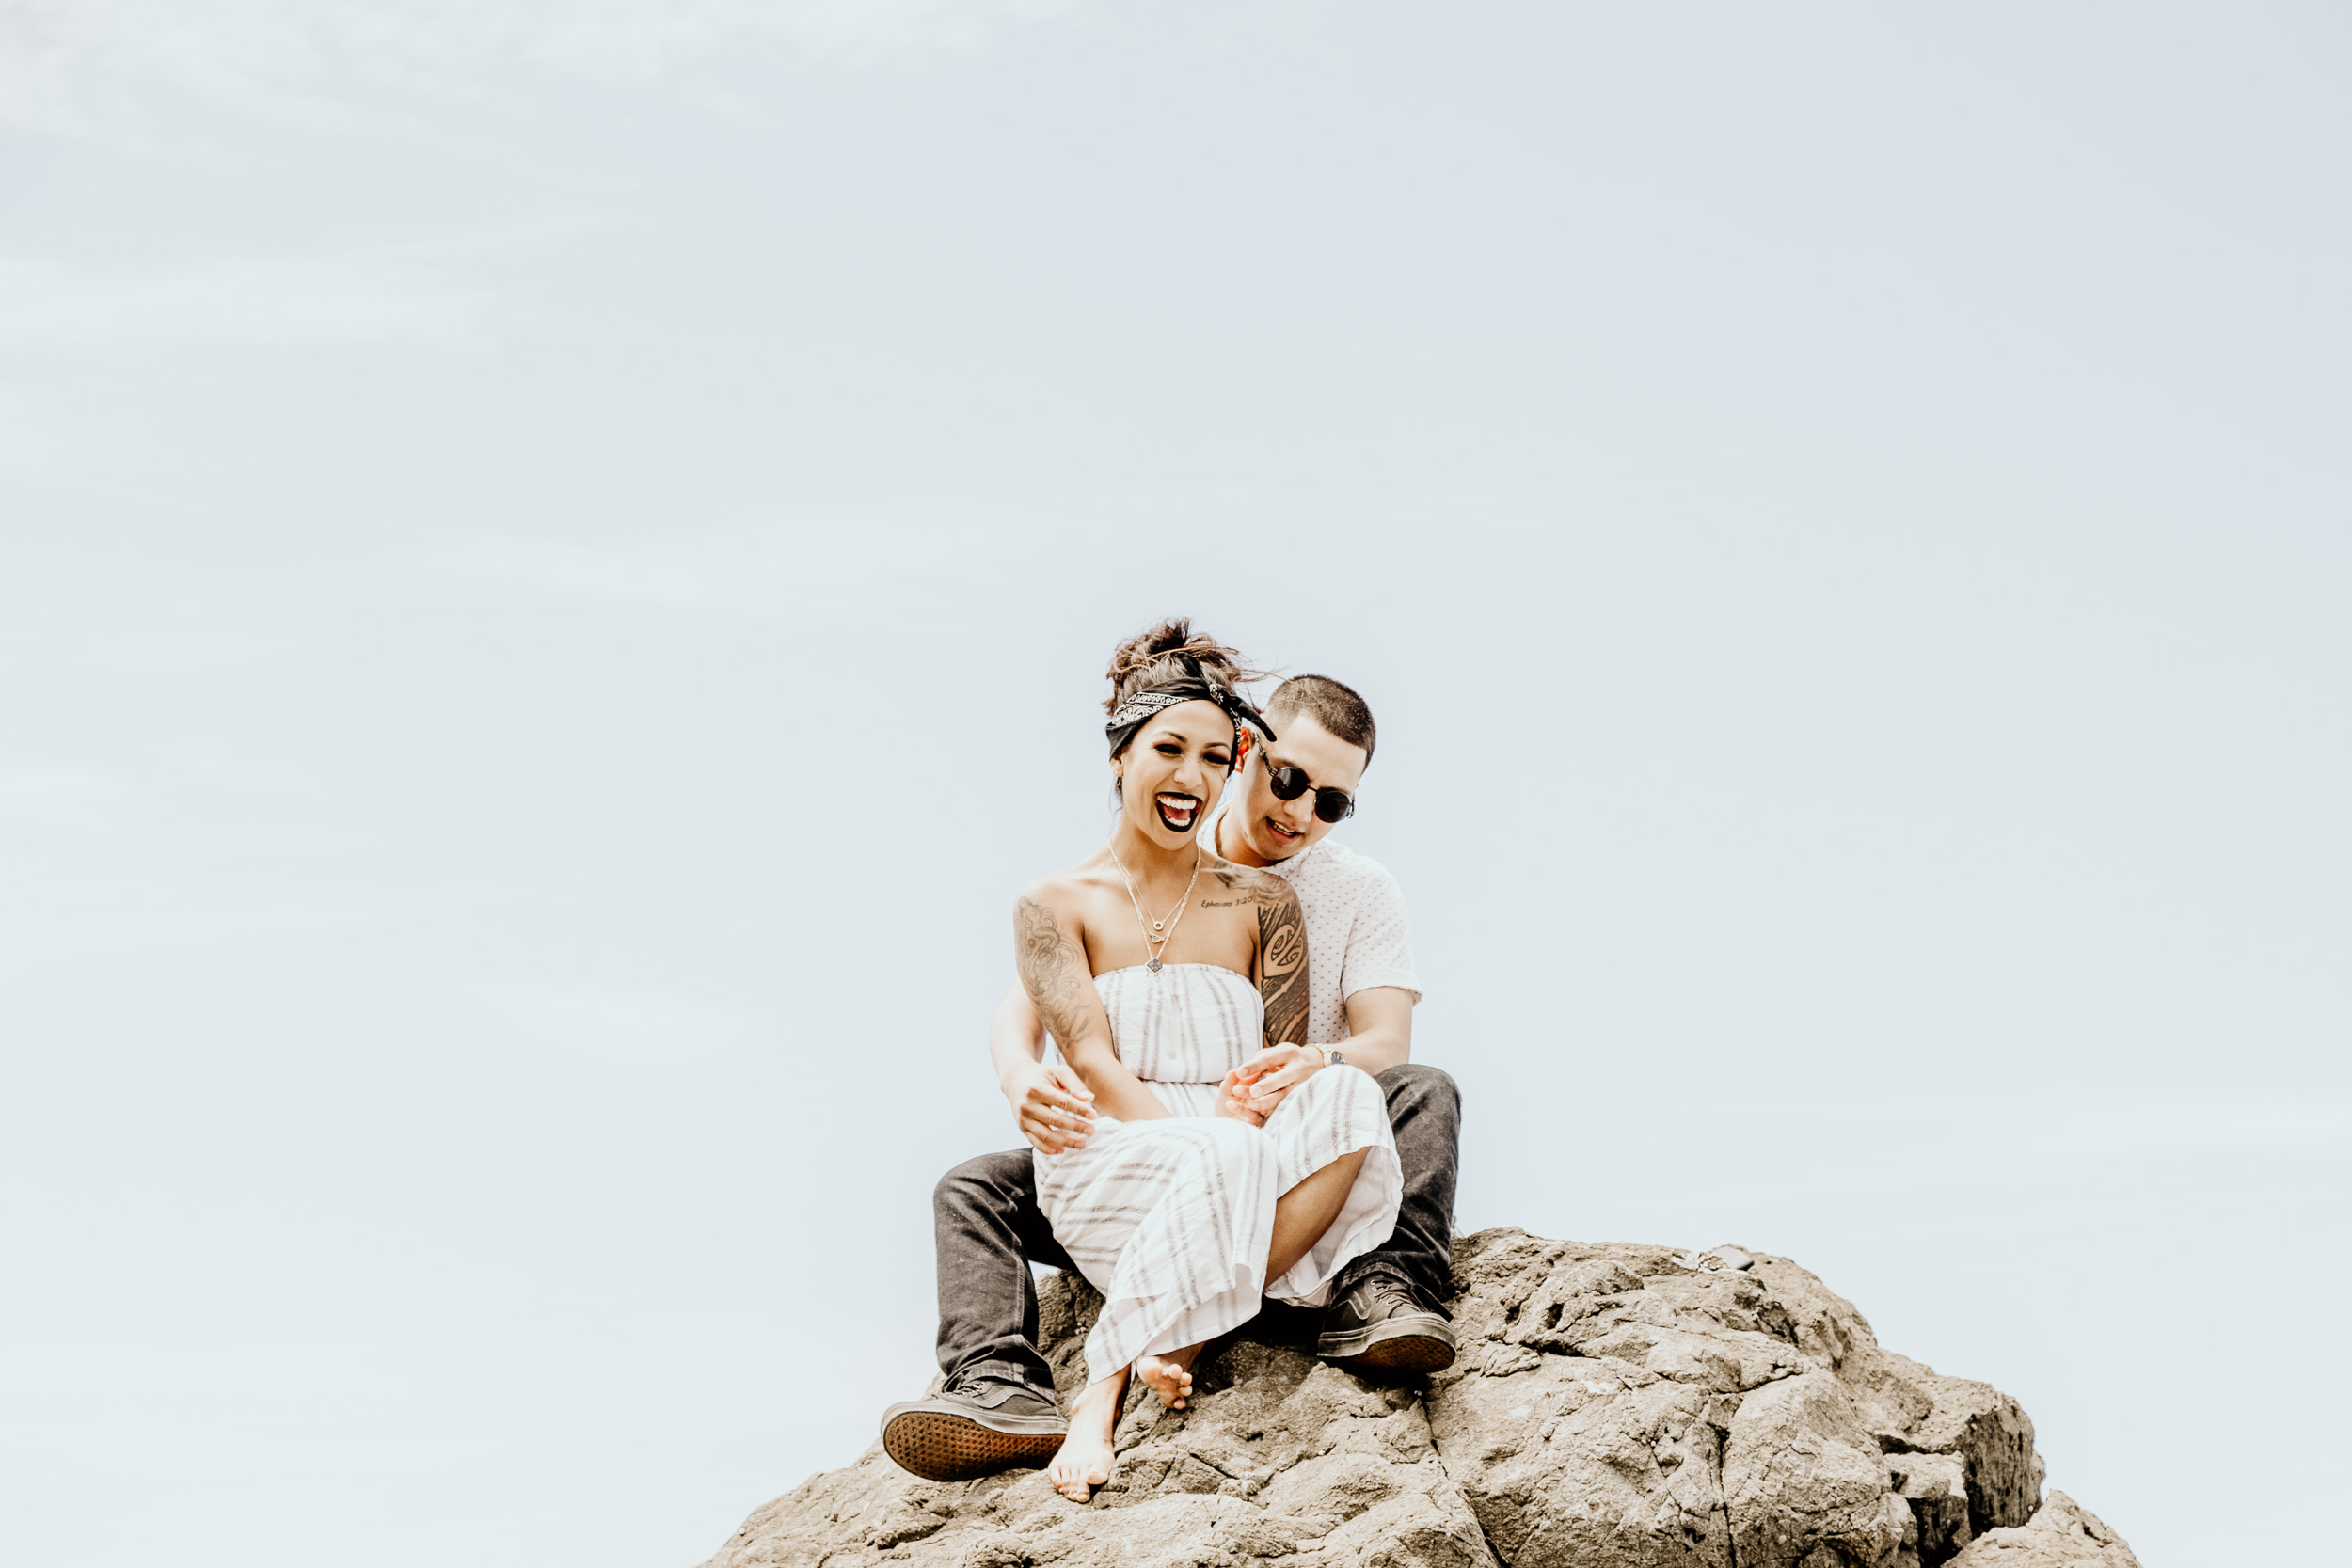 intimate-wedding-elopement-photographer-ottawa-joshua-tree-6966.jpg